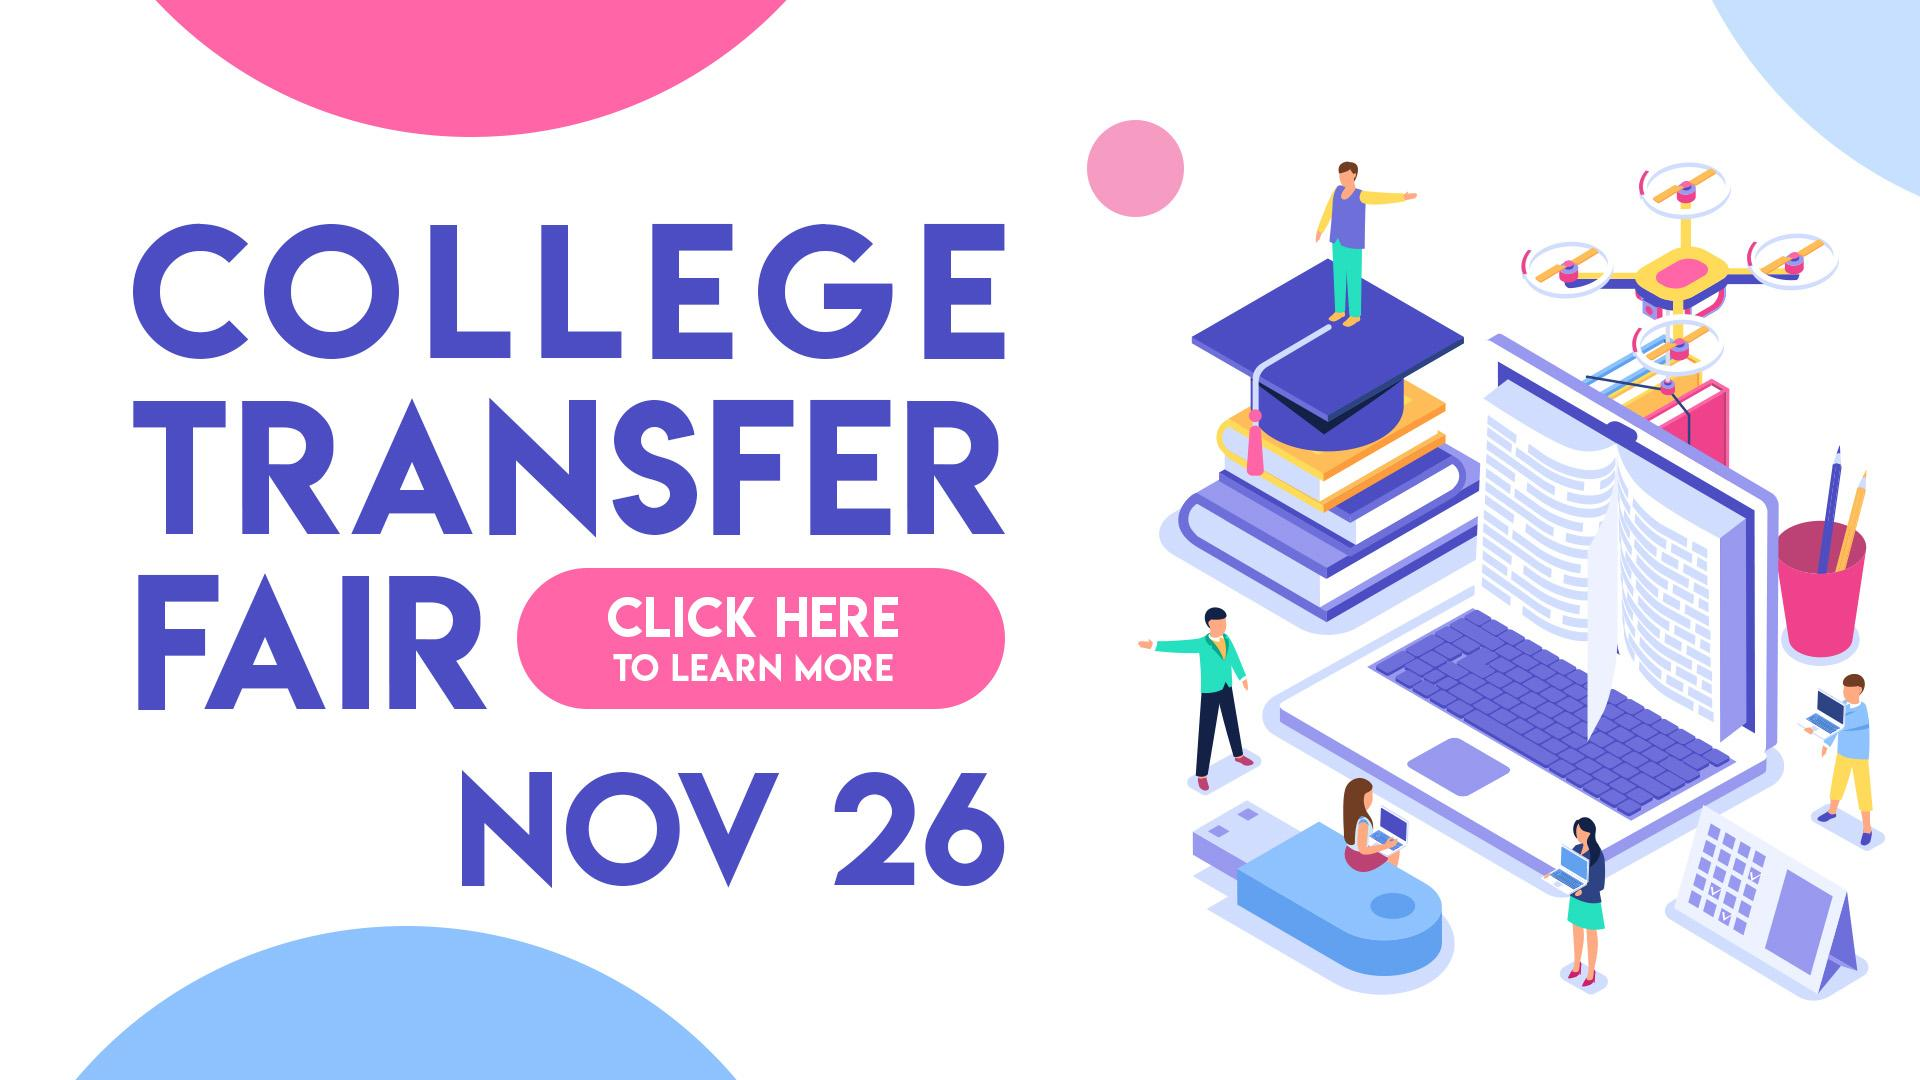 College Transfer Fair - Hosted November 26th in the Wilson building Lobby from 12pm-1:45pm. Click here to visit the calendar widget.